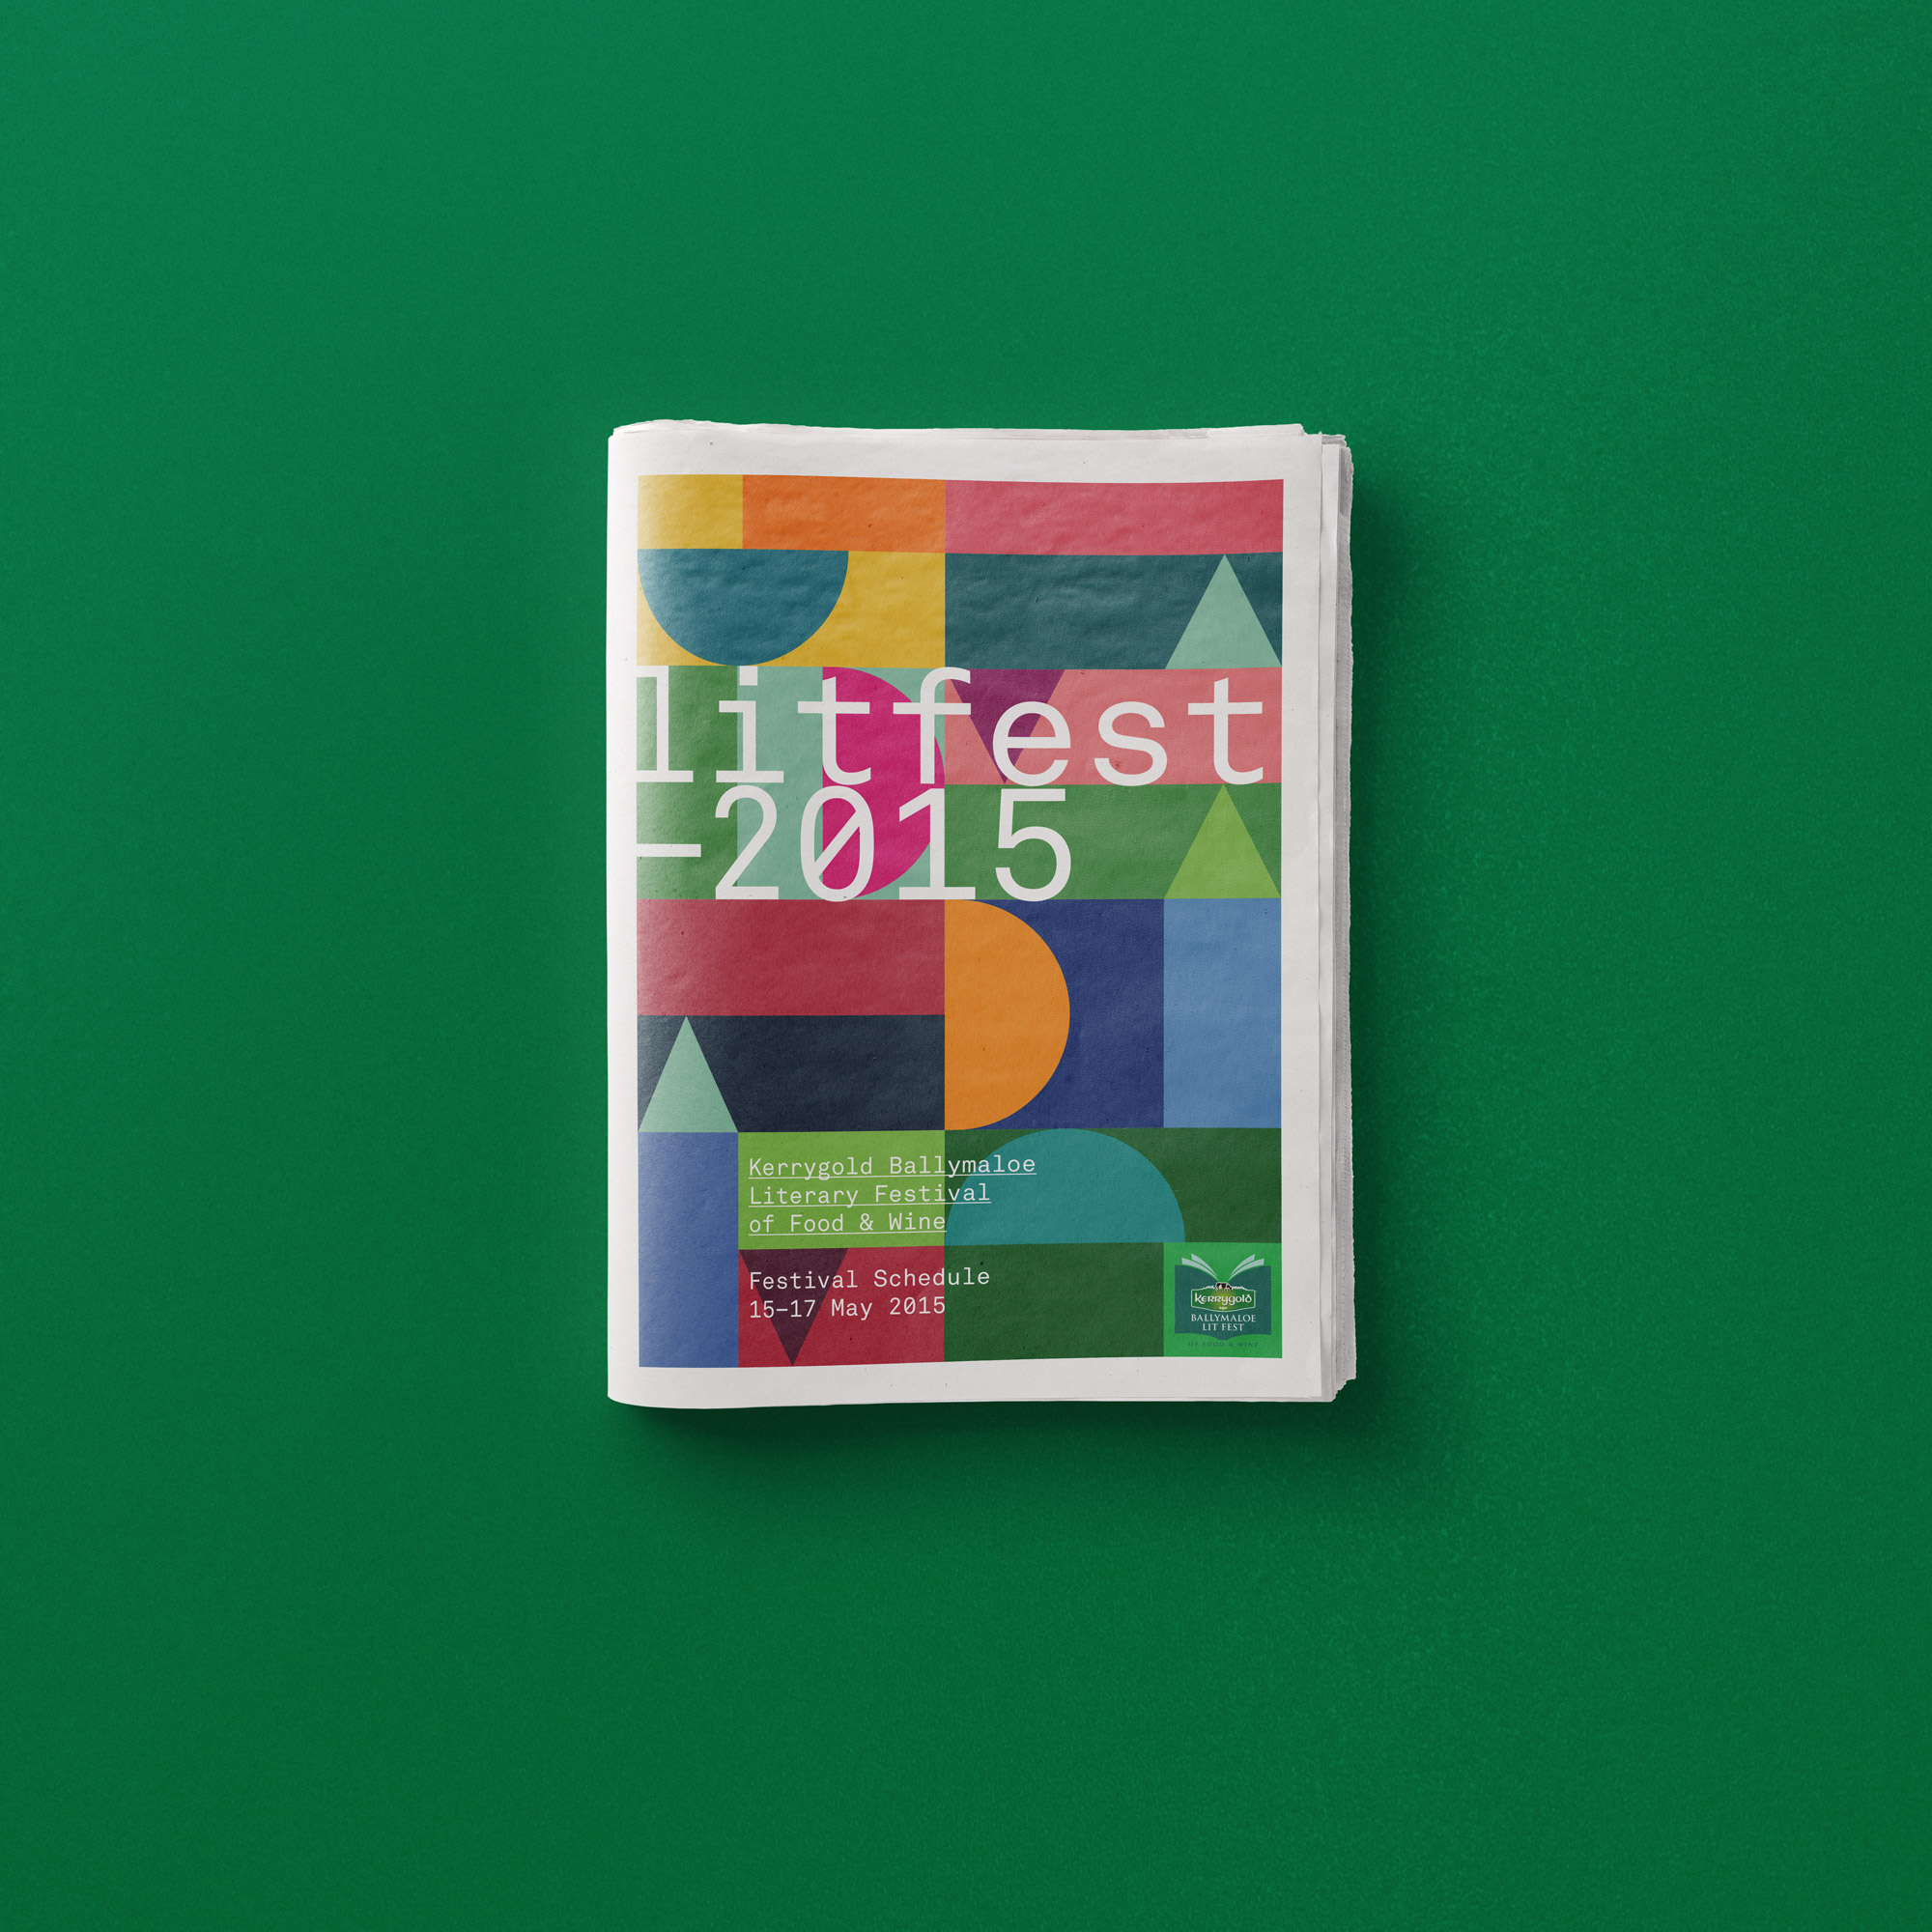 Cover image: Ballymaloe Litfest 2015